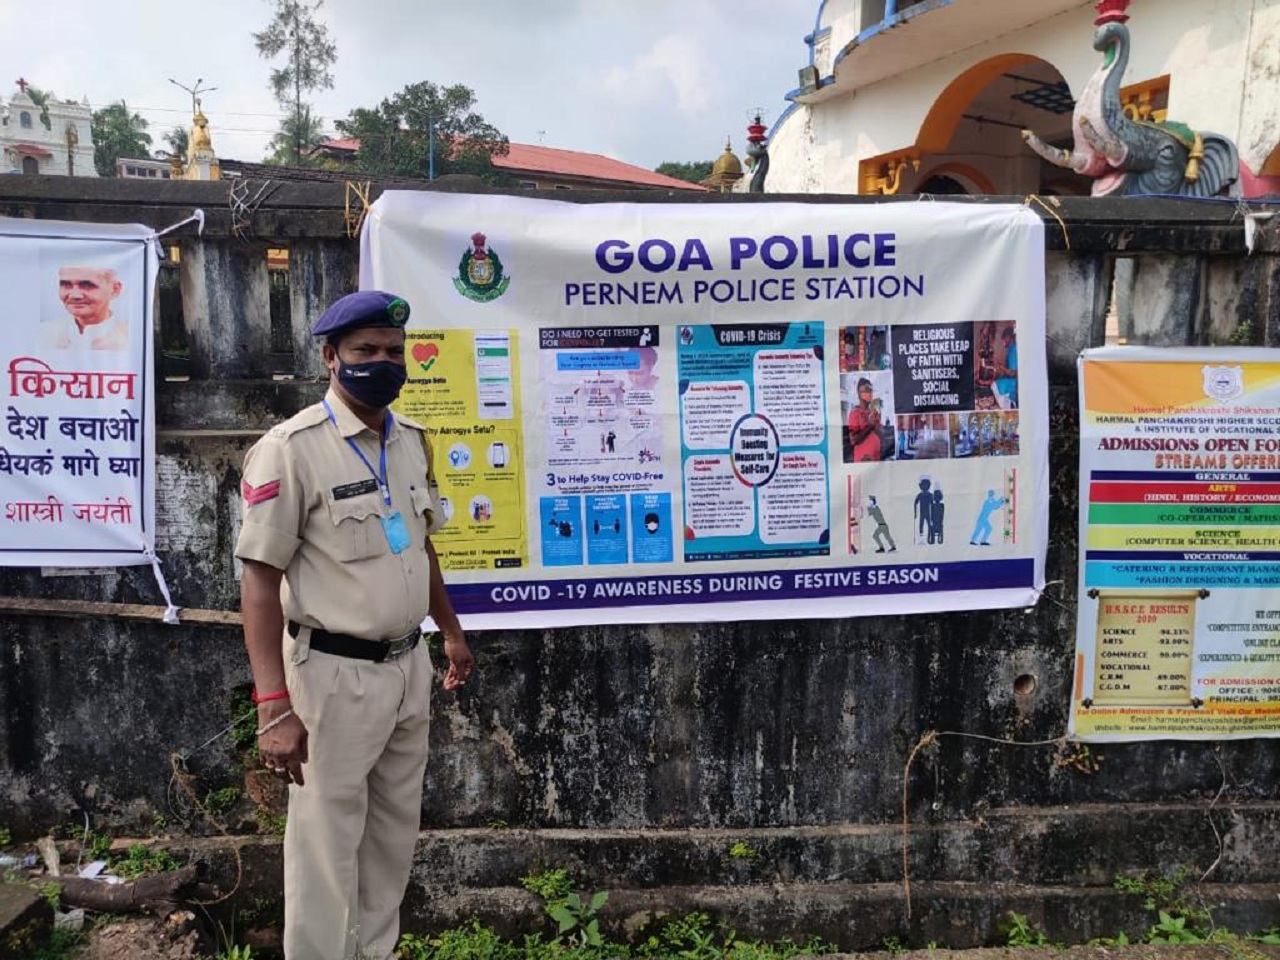 Banners and pamphlets spreading awareness regarding CoVID 19 were done by Goa Police in view of the upcoming festive season